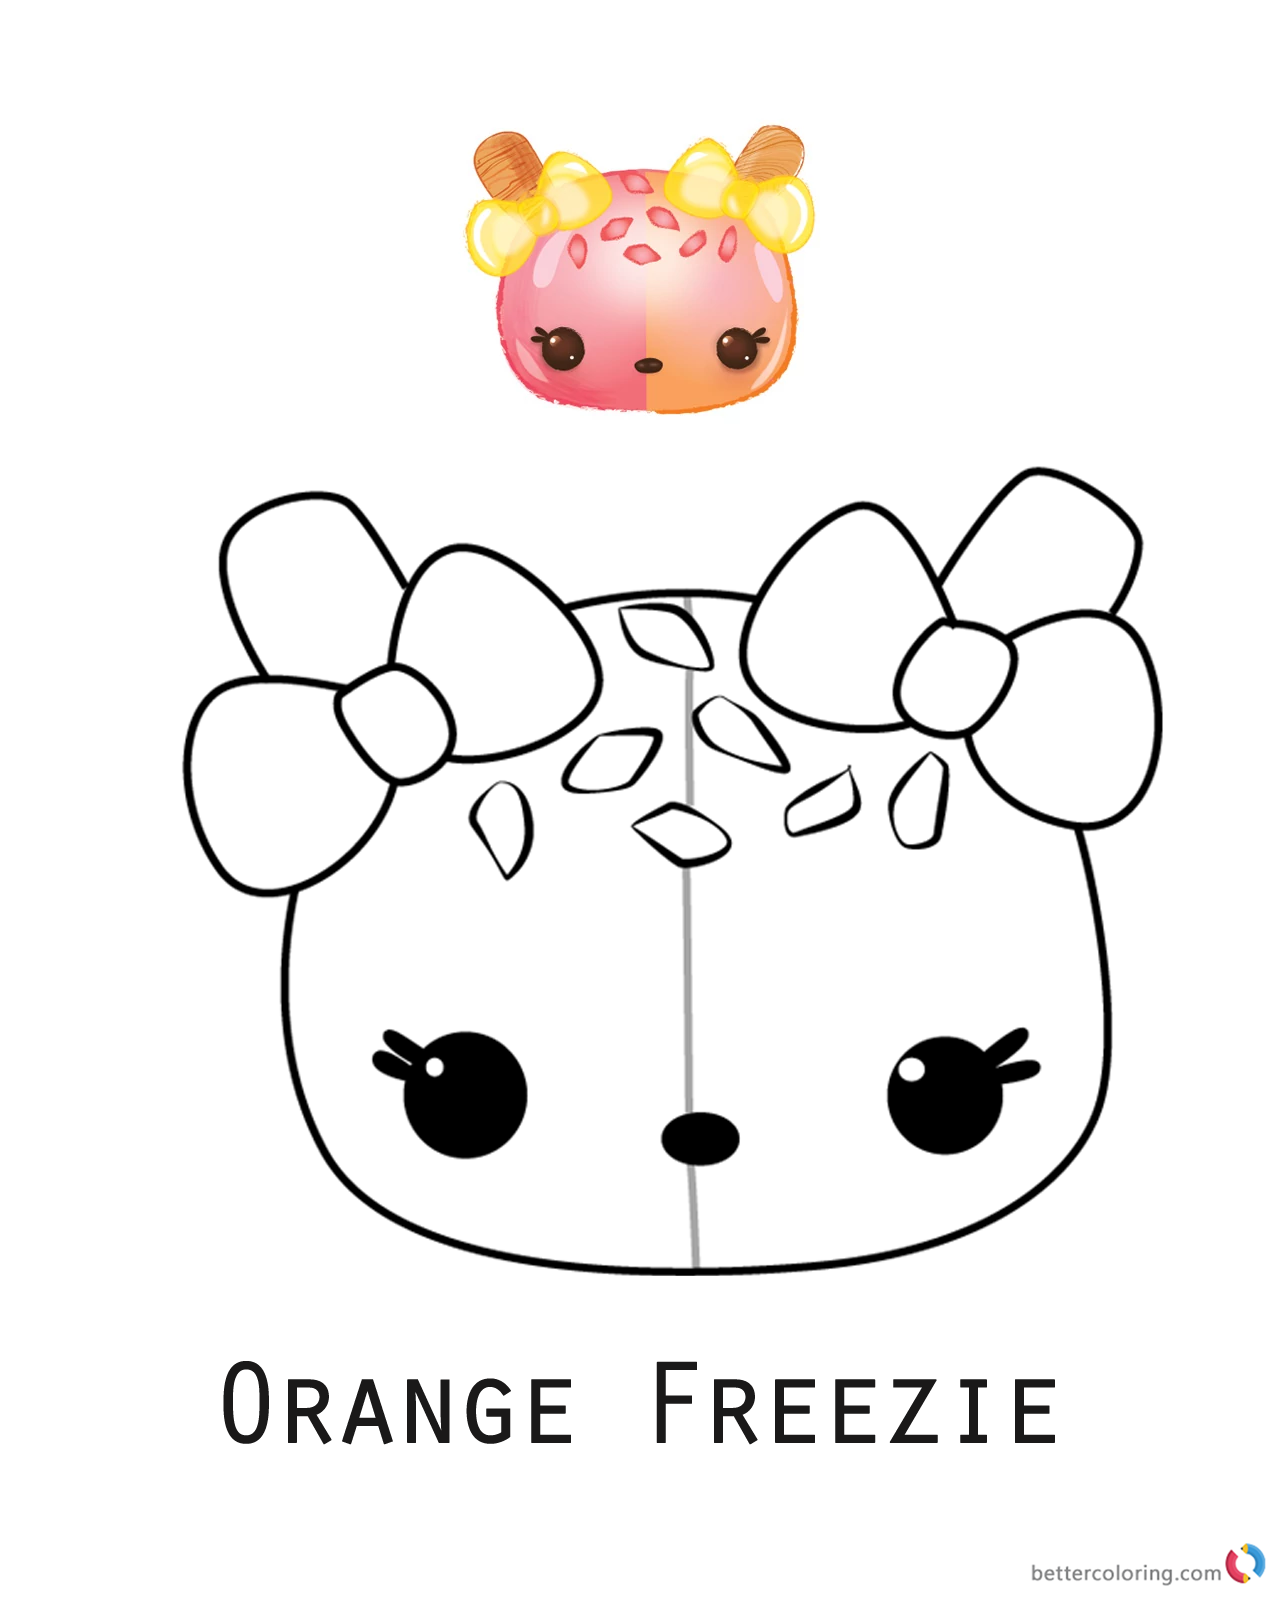 Orange Freezie from Num Noms coloring pages printable